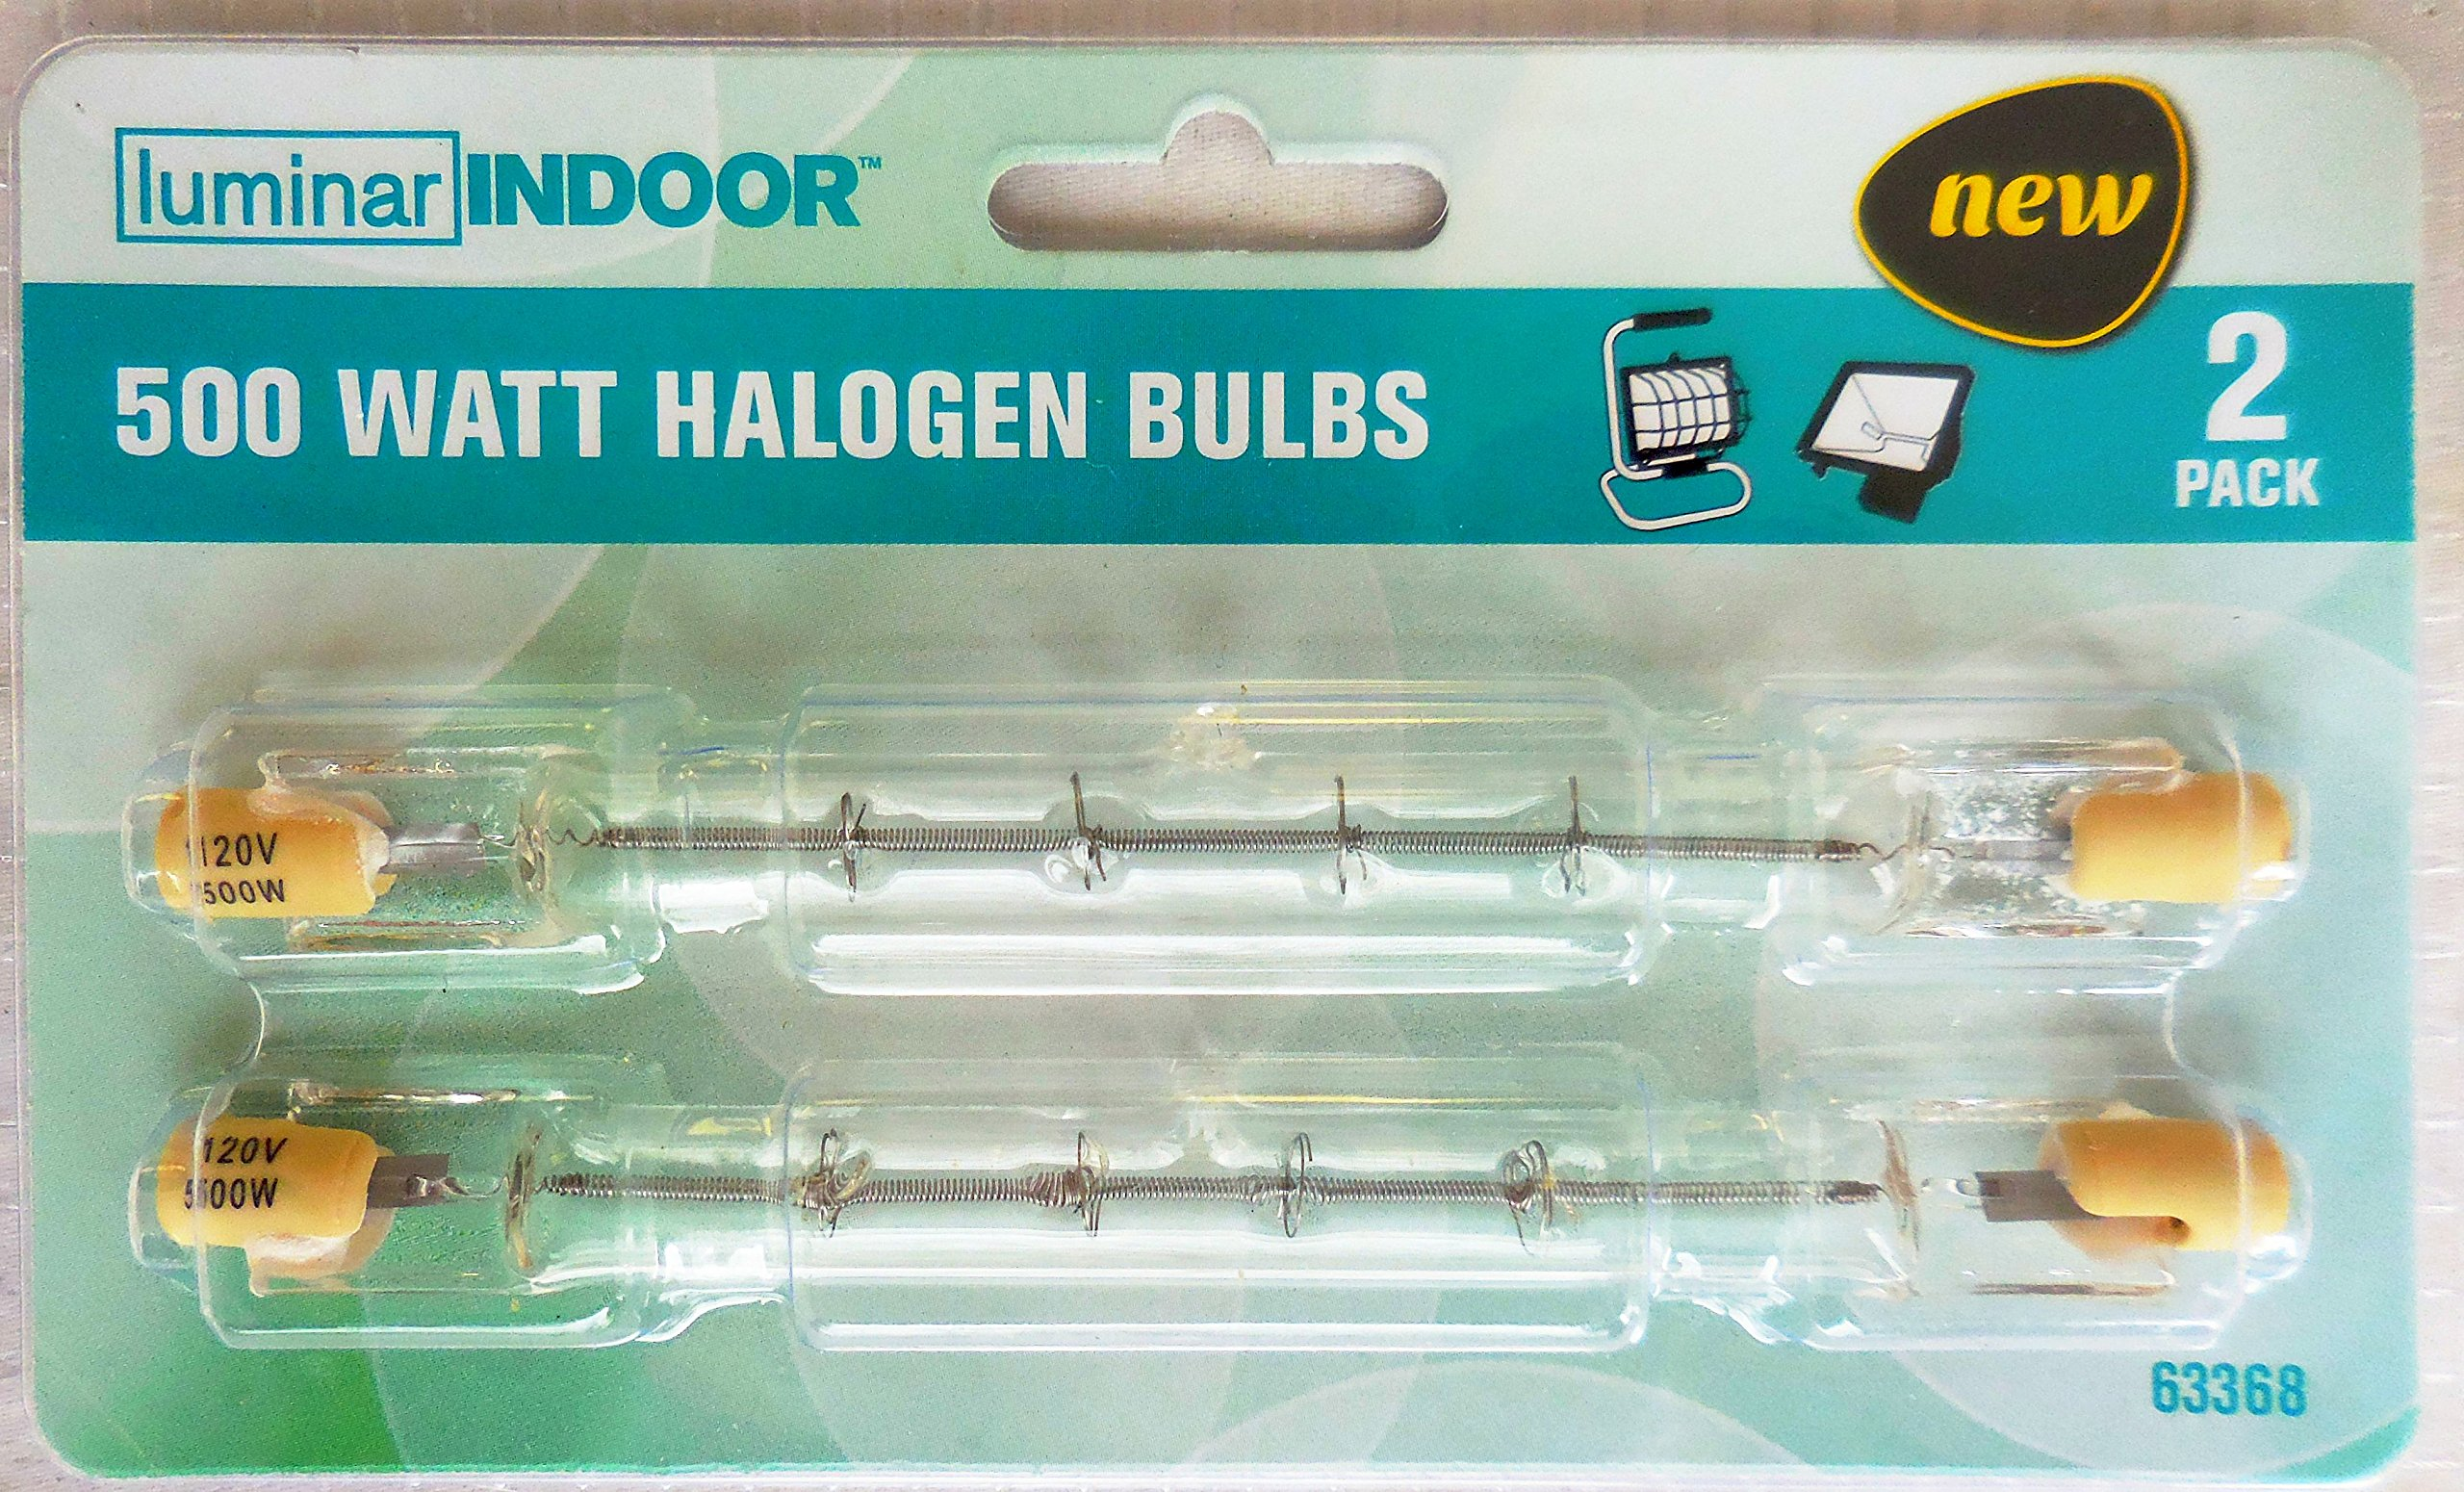 500 WATT Halogen Bulbs